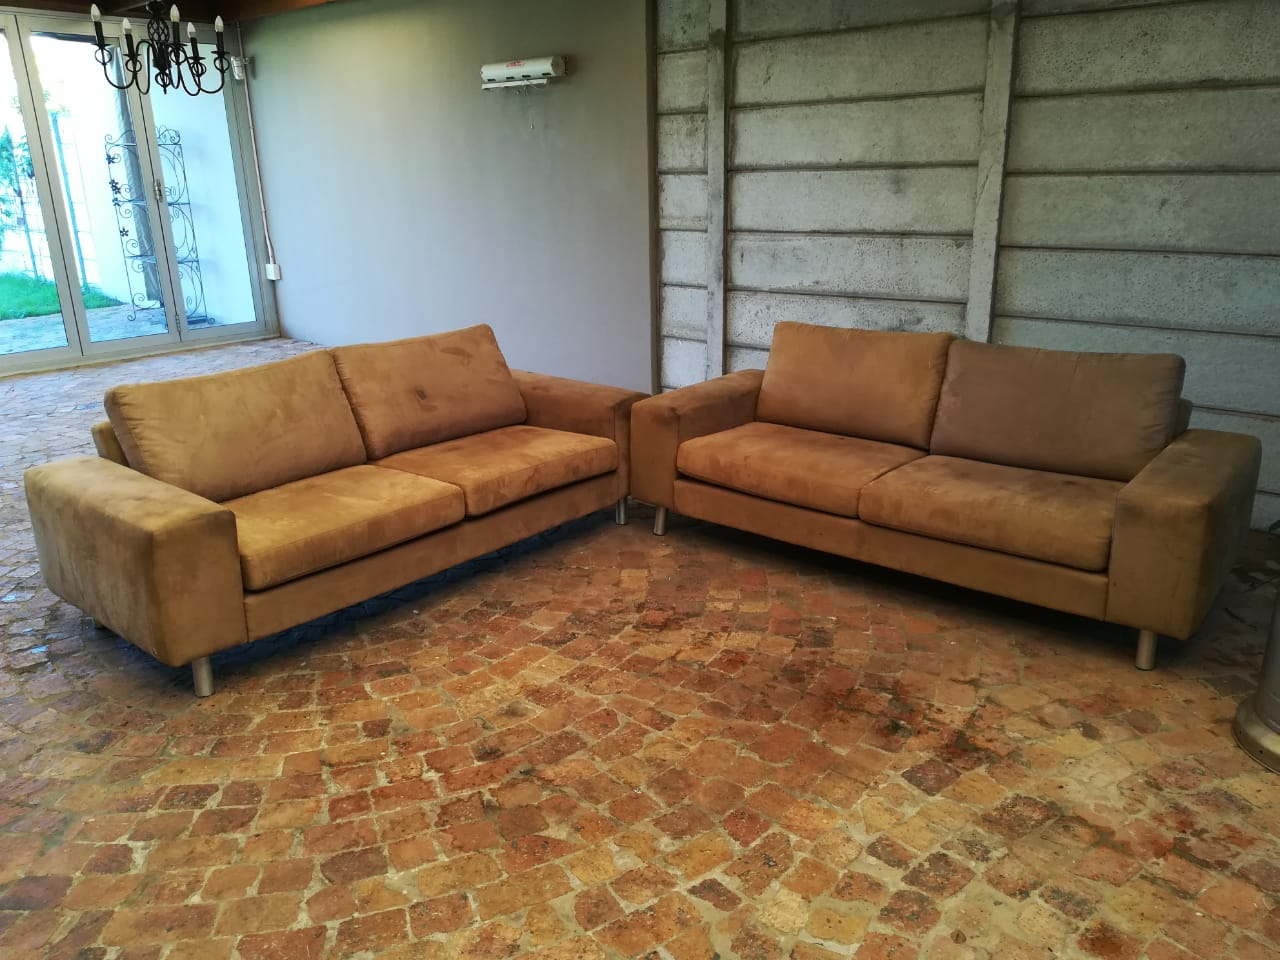 2 Weylandts Second Hand Sofas R2 000 00 Phone Mark 084 247 4726